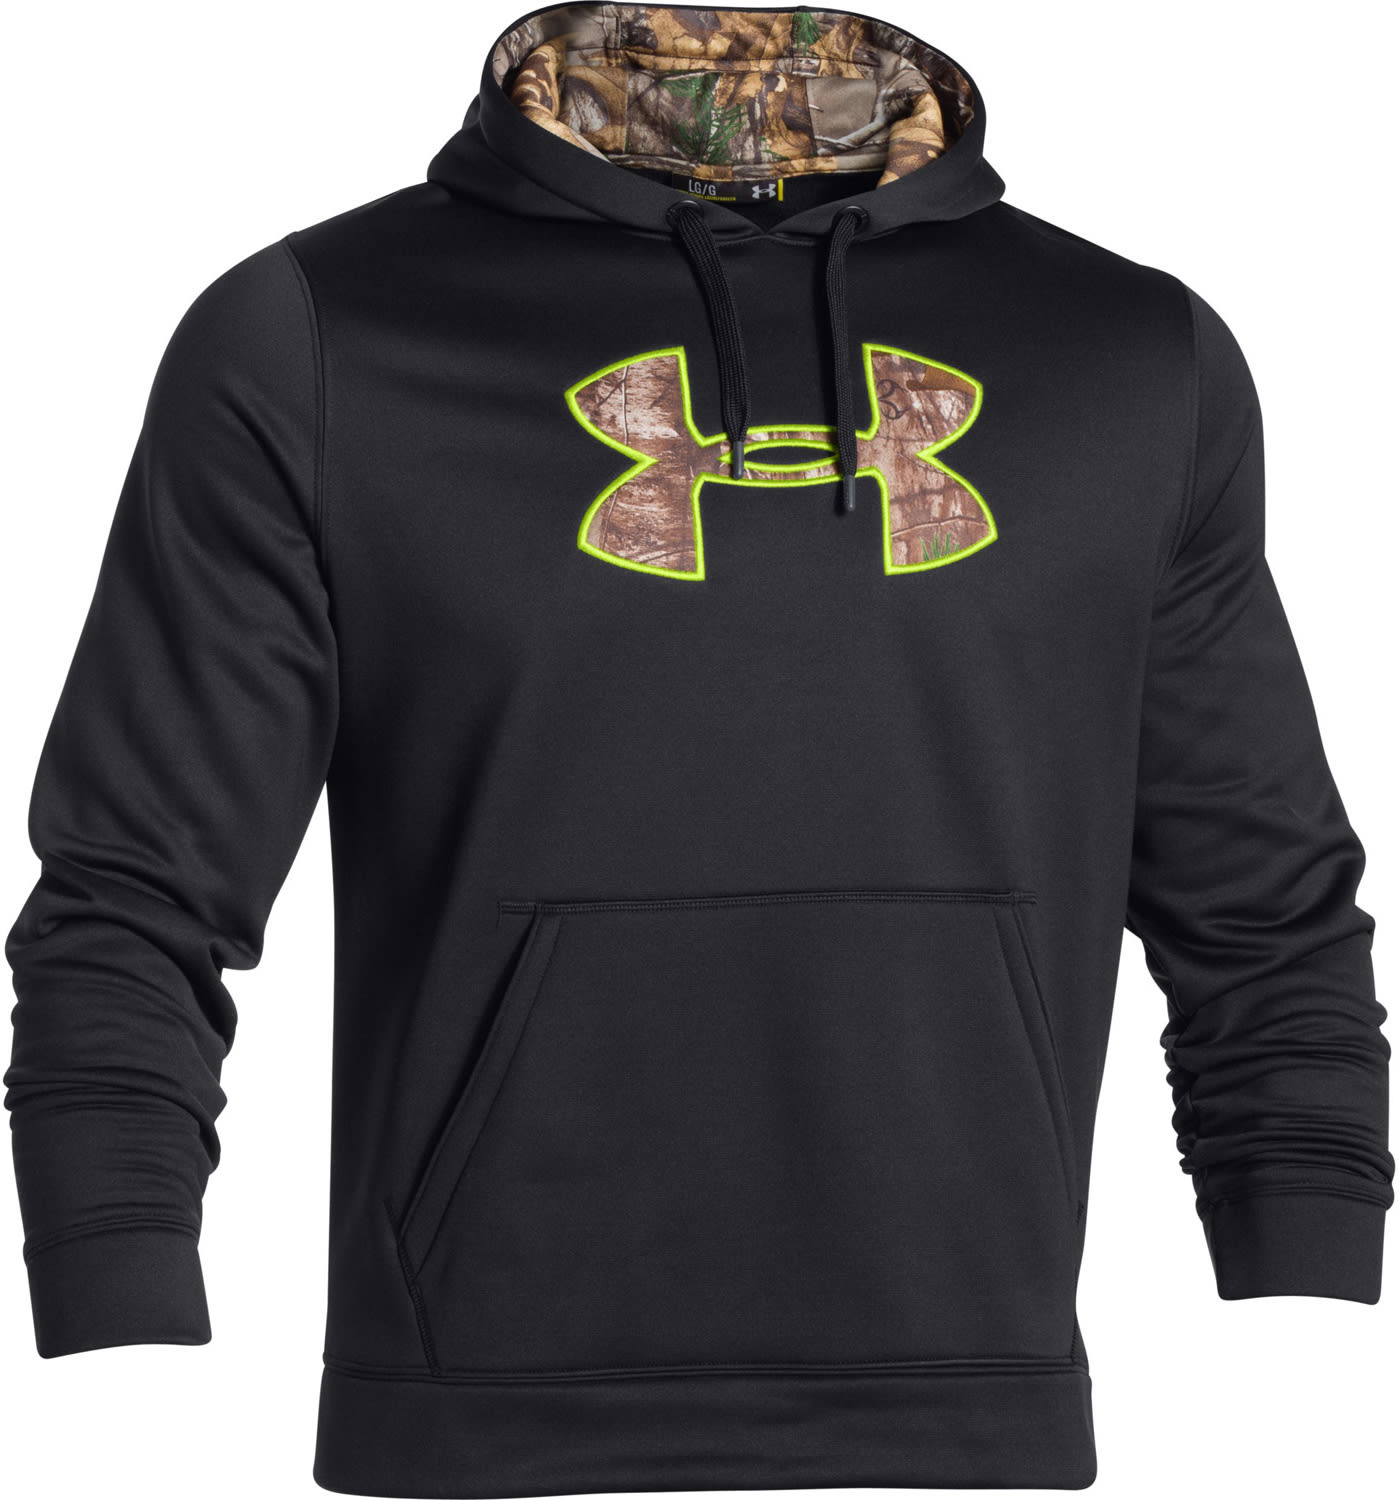 Under armour hoodies on sale